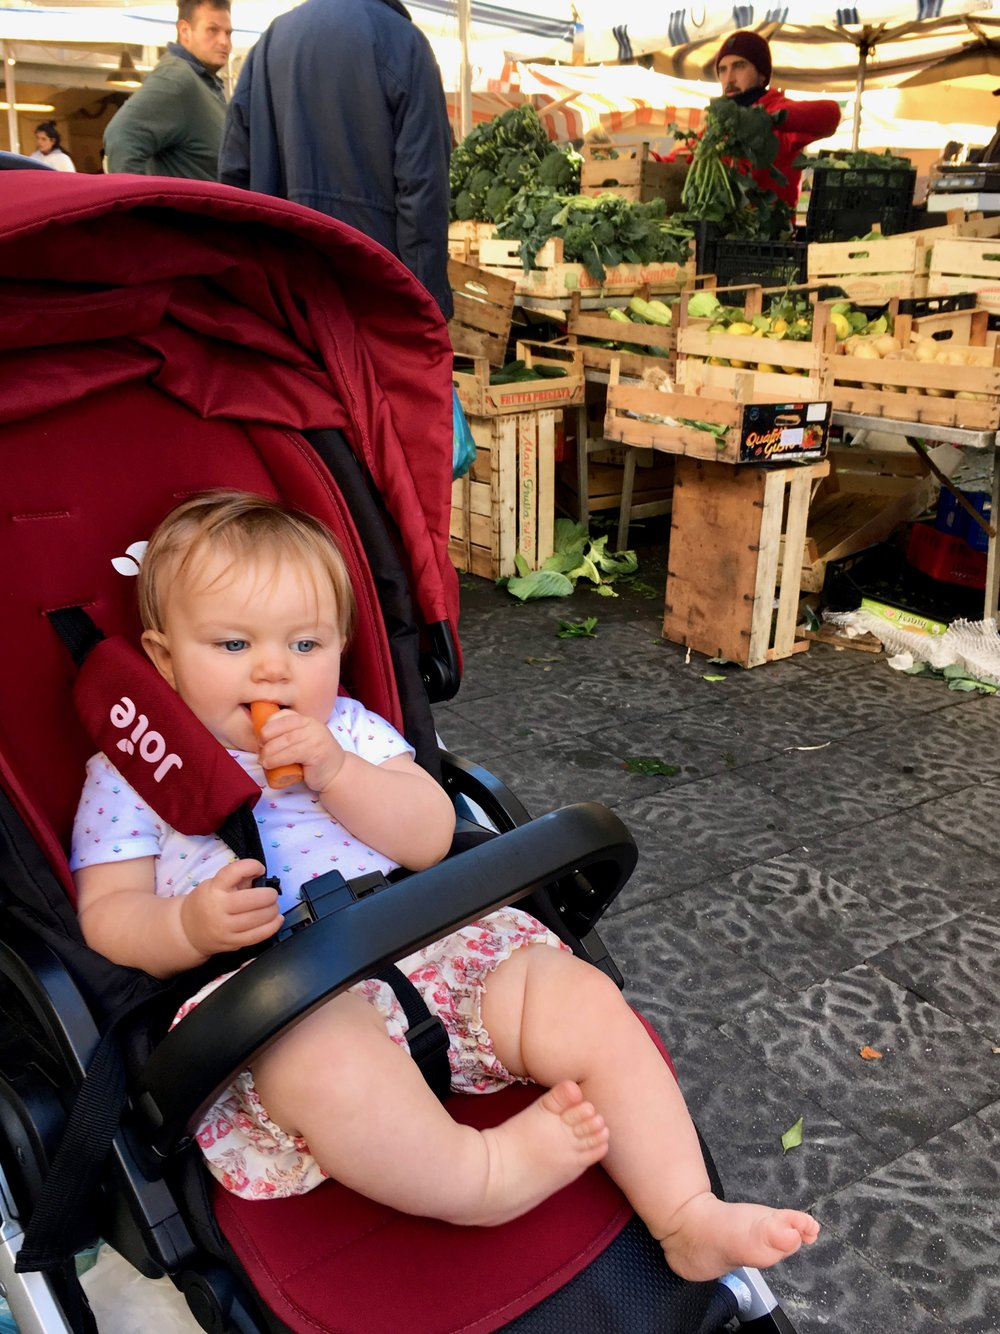 Boss Baby snackin' on a fresh carrot at the market.